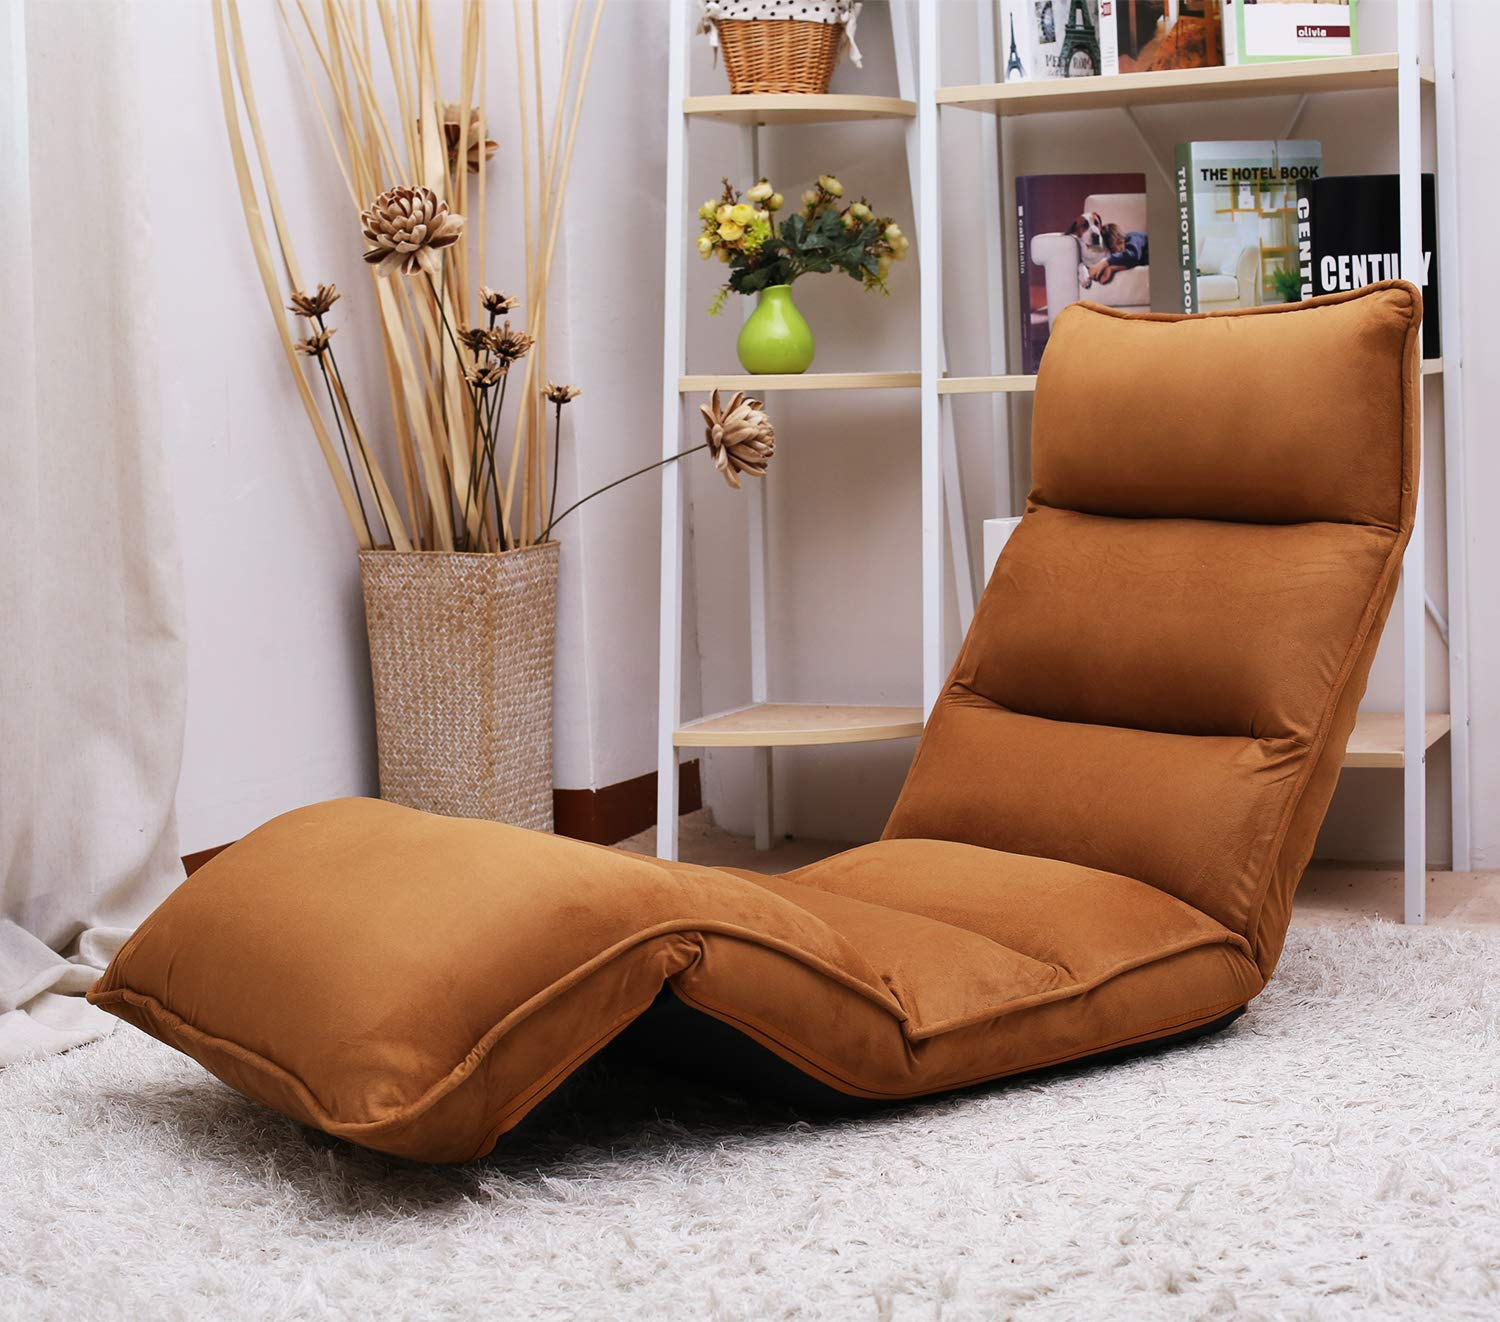 Amazon.com: Upholstered Lazy Sofa Floor Sofa Chair Couch ...